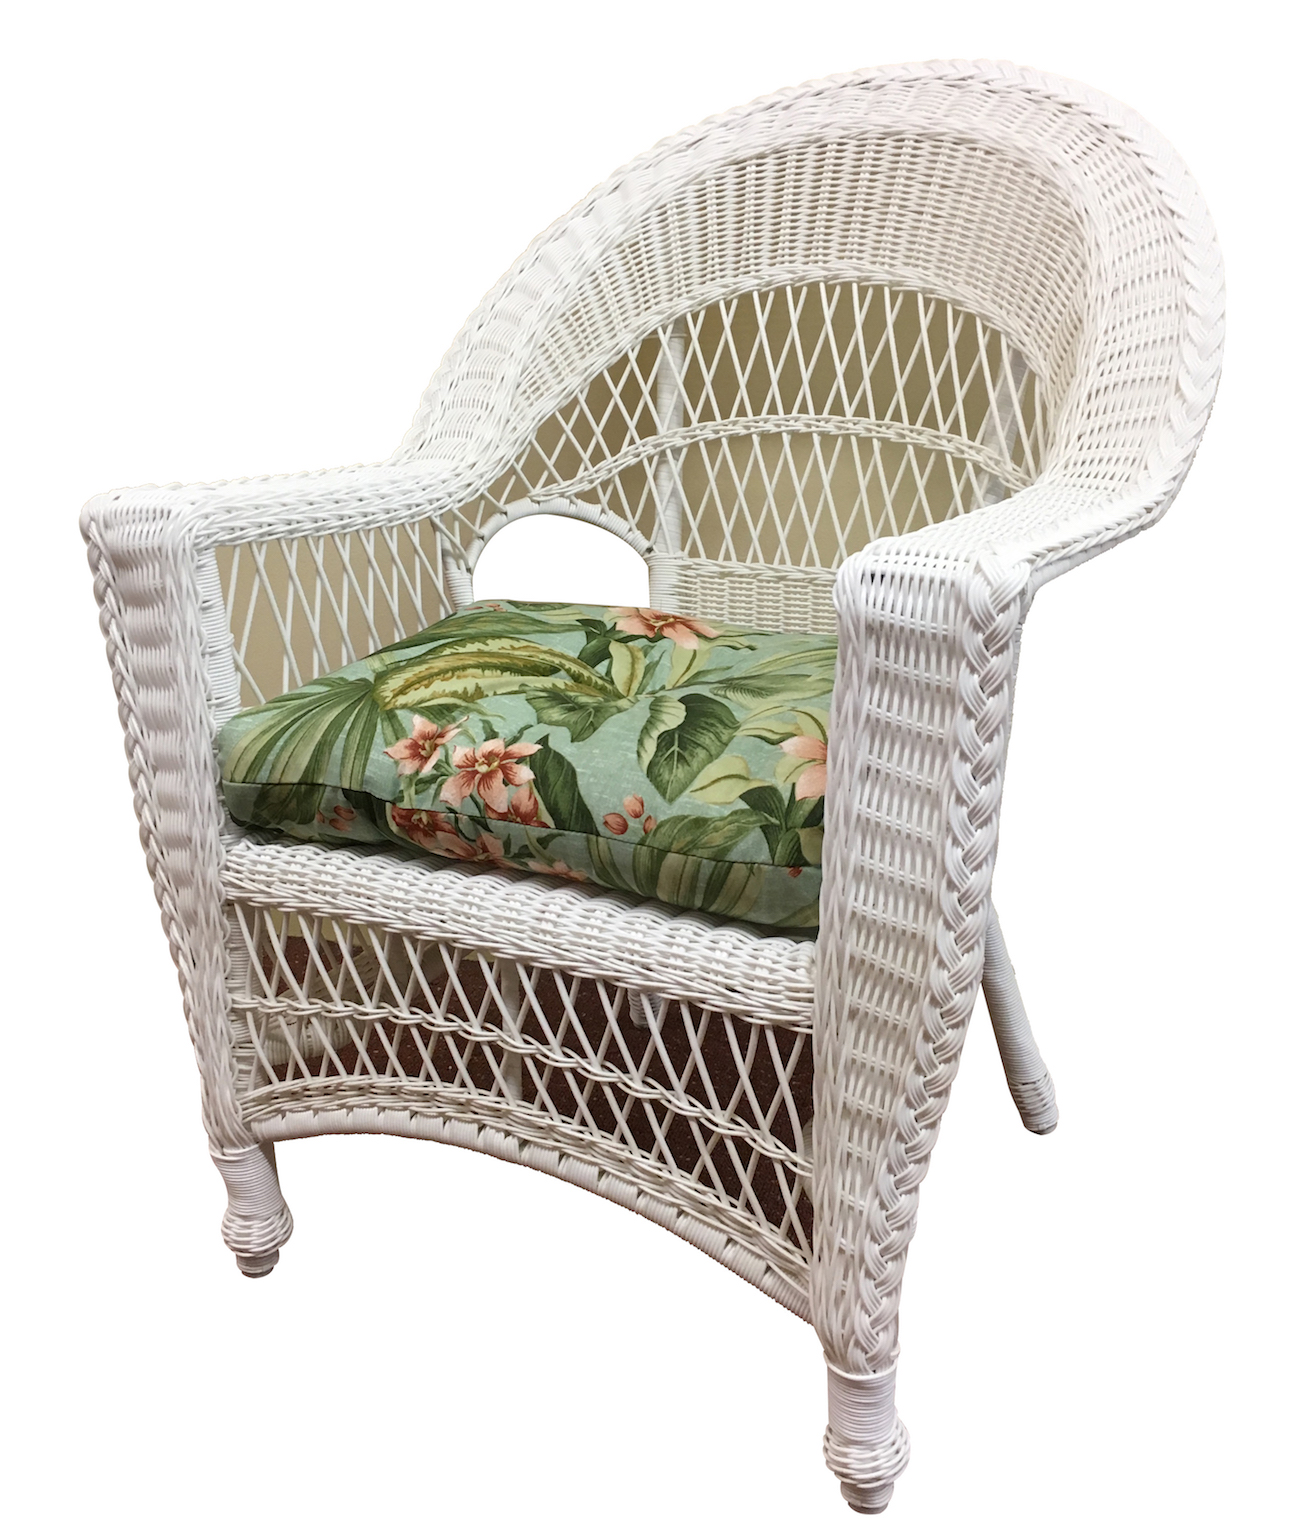 wicker chairs outdoor wicker chair - cape cod BSUSAUE